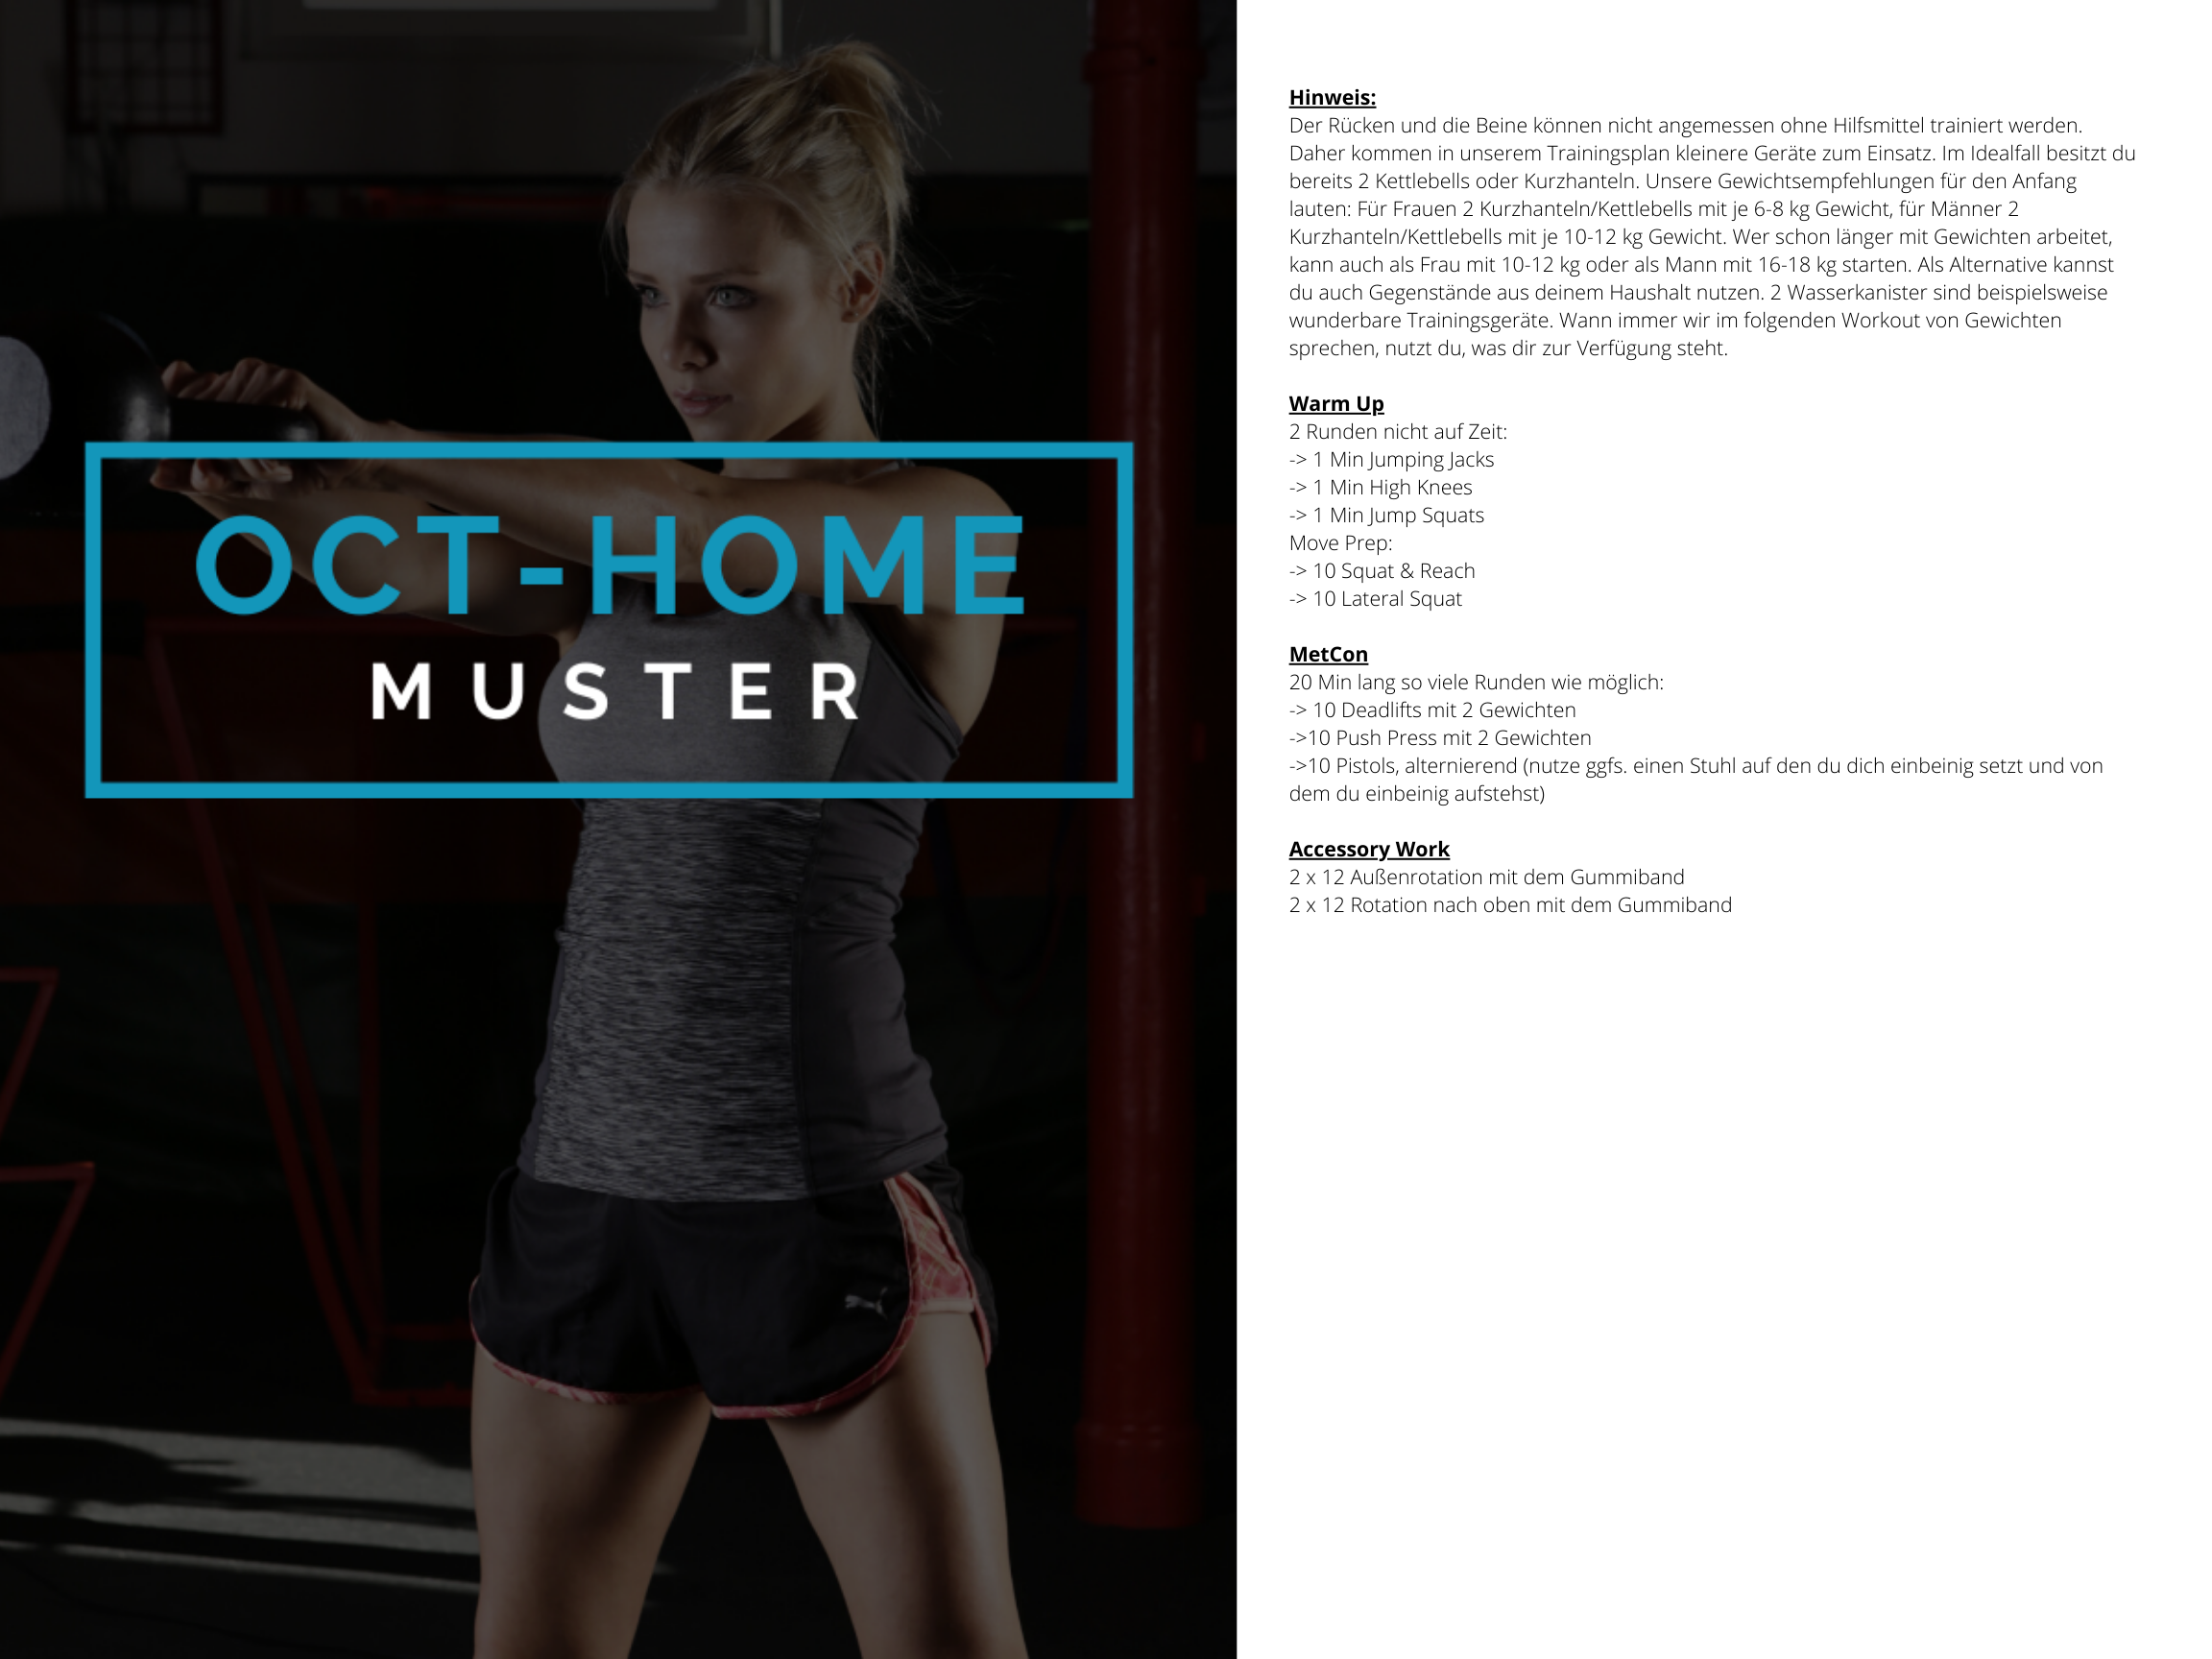 OCT-HOME Muster WOD 1